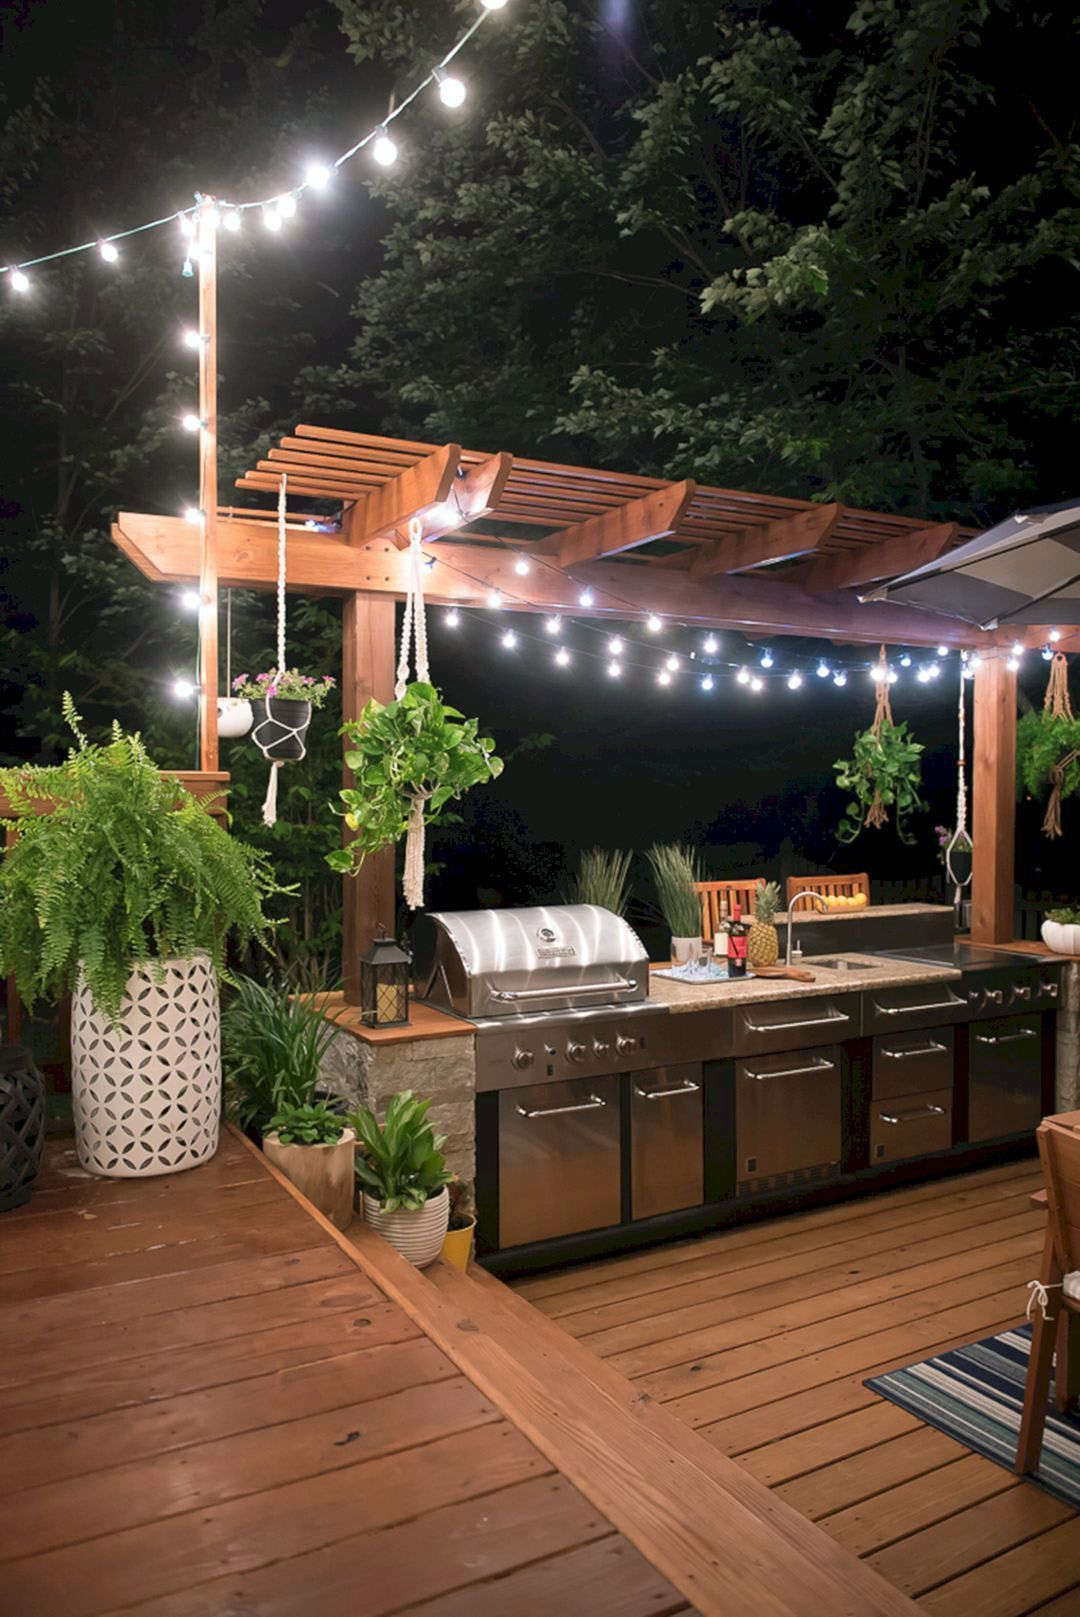 Fashionable Outdoor Kitchen Designs For Small Spaces Philippines You Ll Love Outdoor Remodel Outdoor Kitchen Design Outdoor Kitchen Design Layout